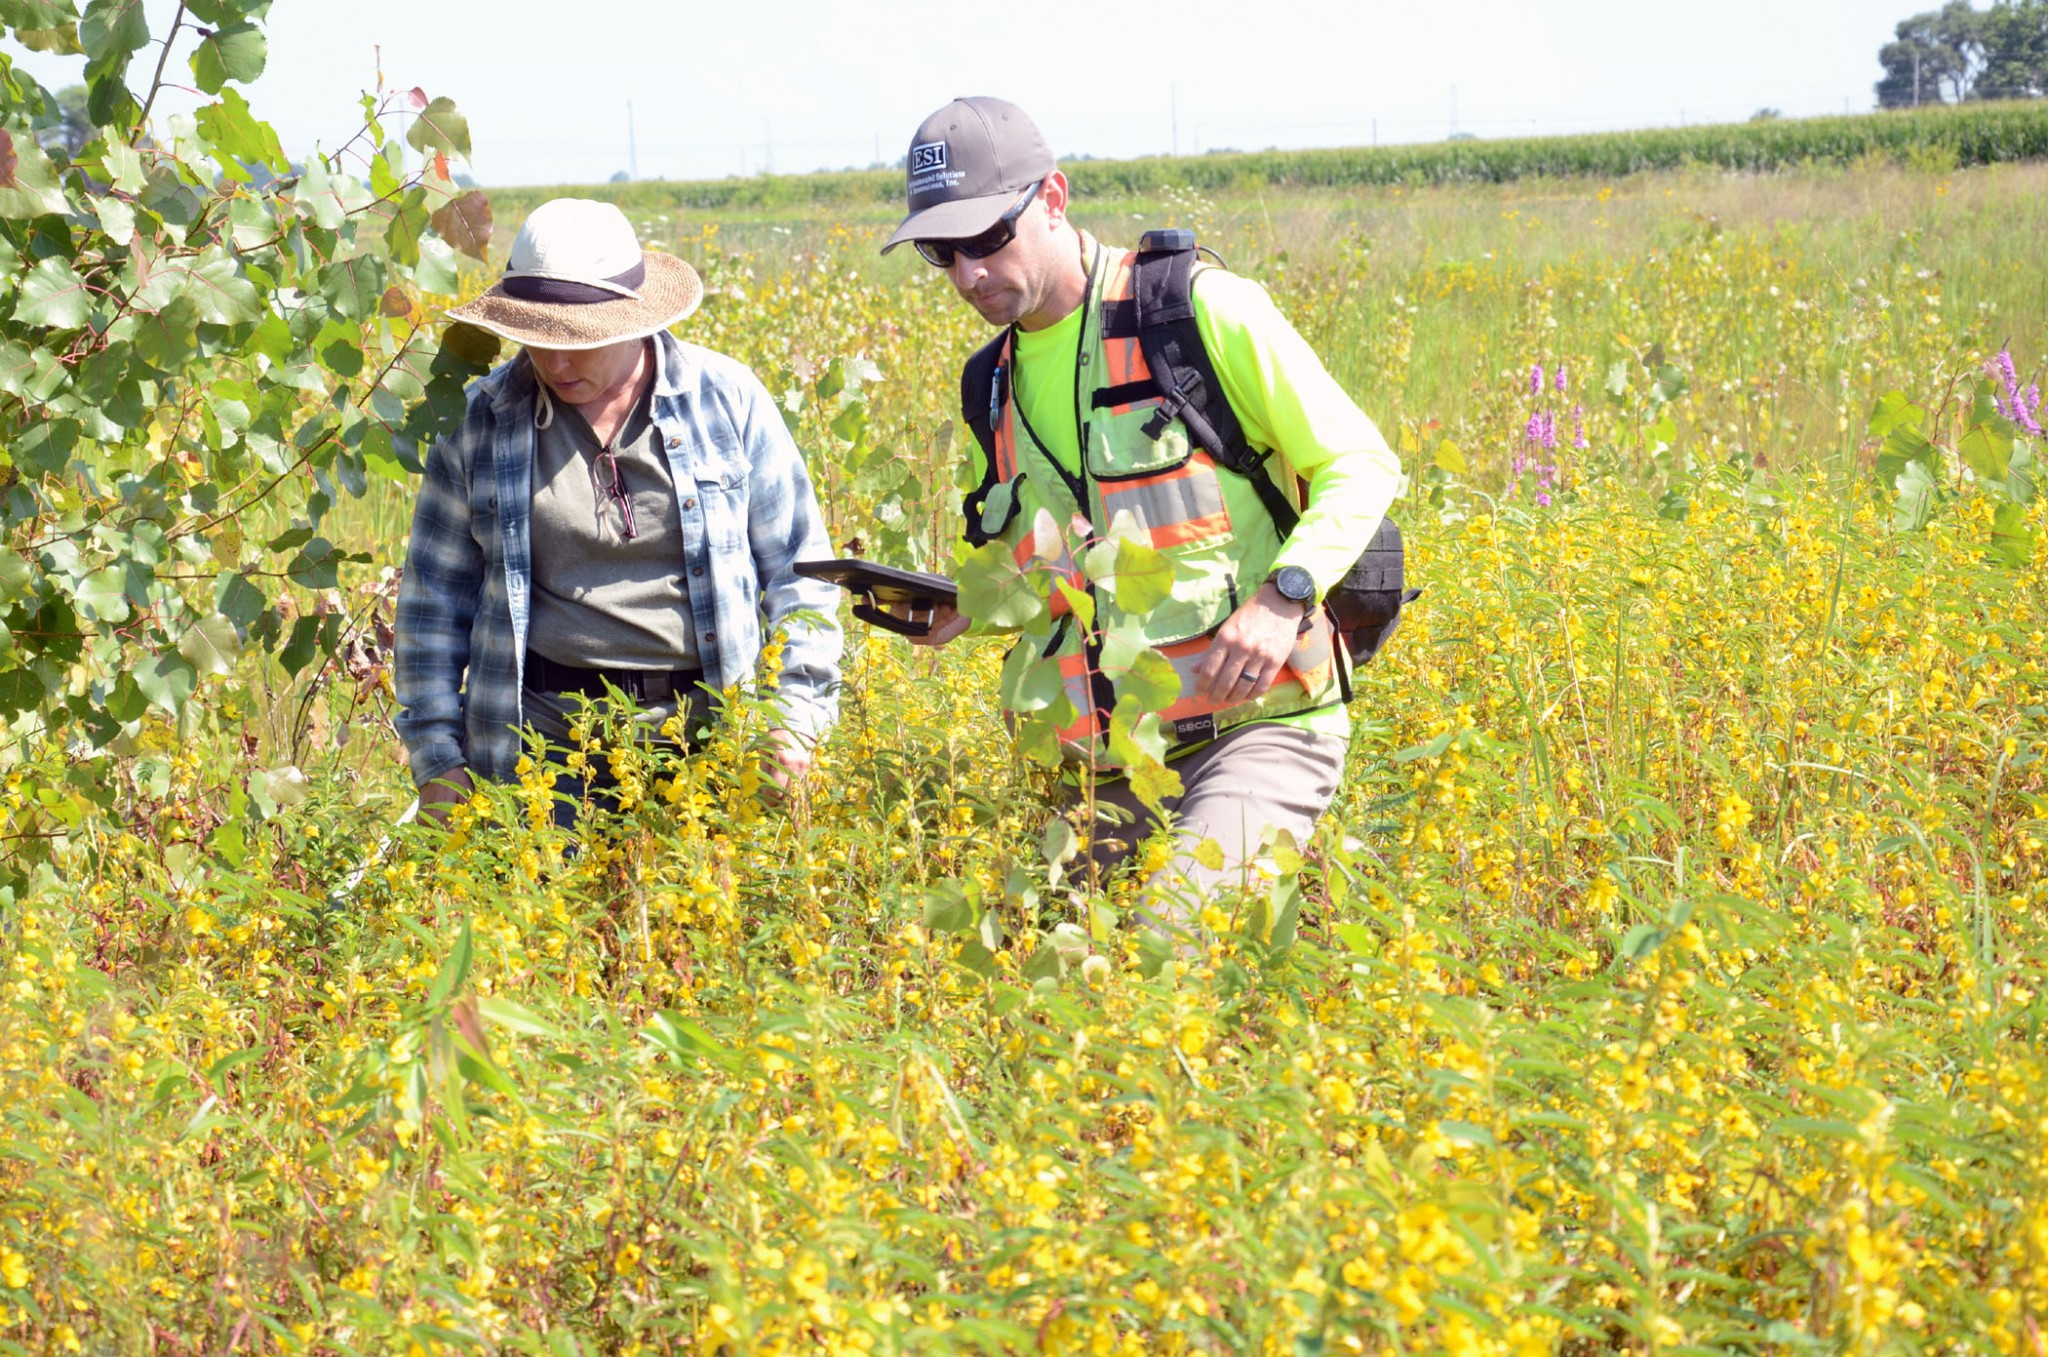 """Beth Ackerman, one of the property owners who is opposed to an industrial park on the east side of the city, walks a portion of the wetlands with Scott Denham, a Wetland and Environmental Manager for Environmental Solutions and Innovations, Inc., Ravenna, Ohio. """"Since the City of Oregon hasn't done an environmental impact assesment, the Save the Wetlands group is paying for the assesment,"""" said Ackerman. (Press photo by Ken Grosjean)"""